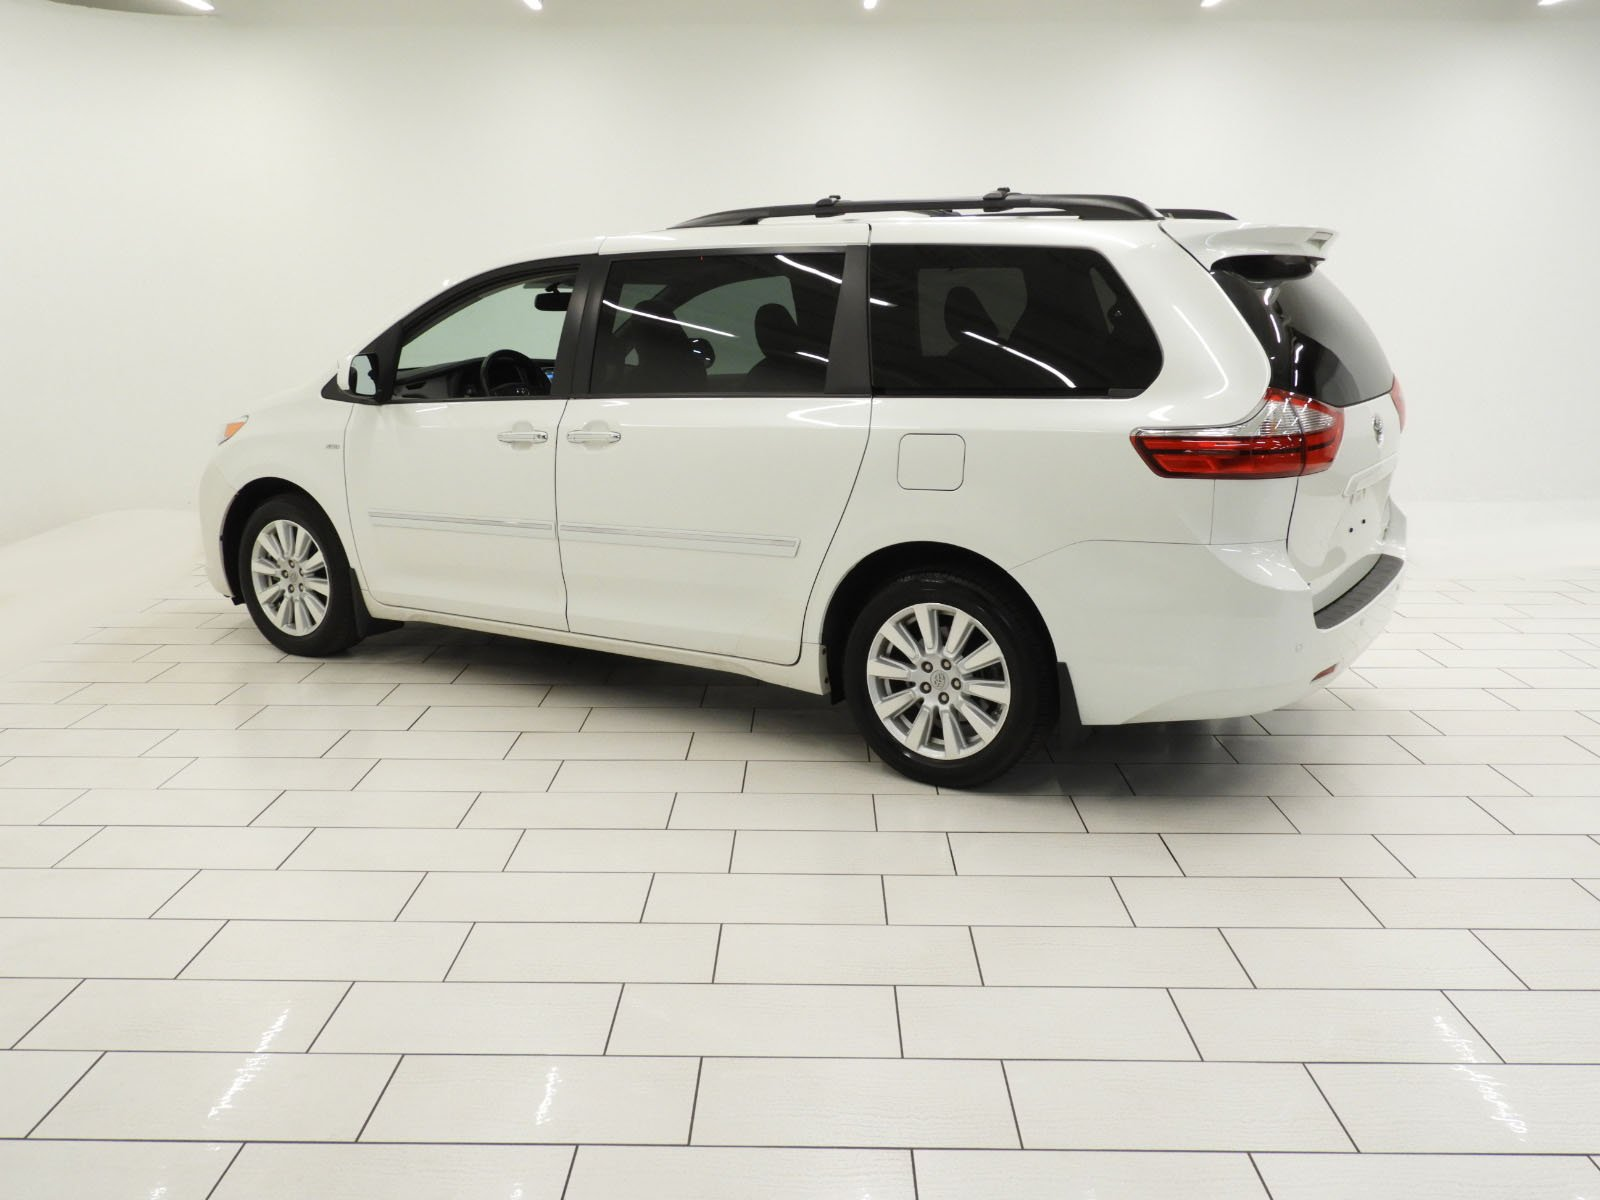 Toyota Sienna Service Manual: Power mirror control system (wo Memory)